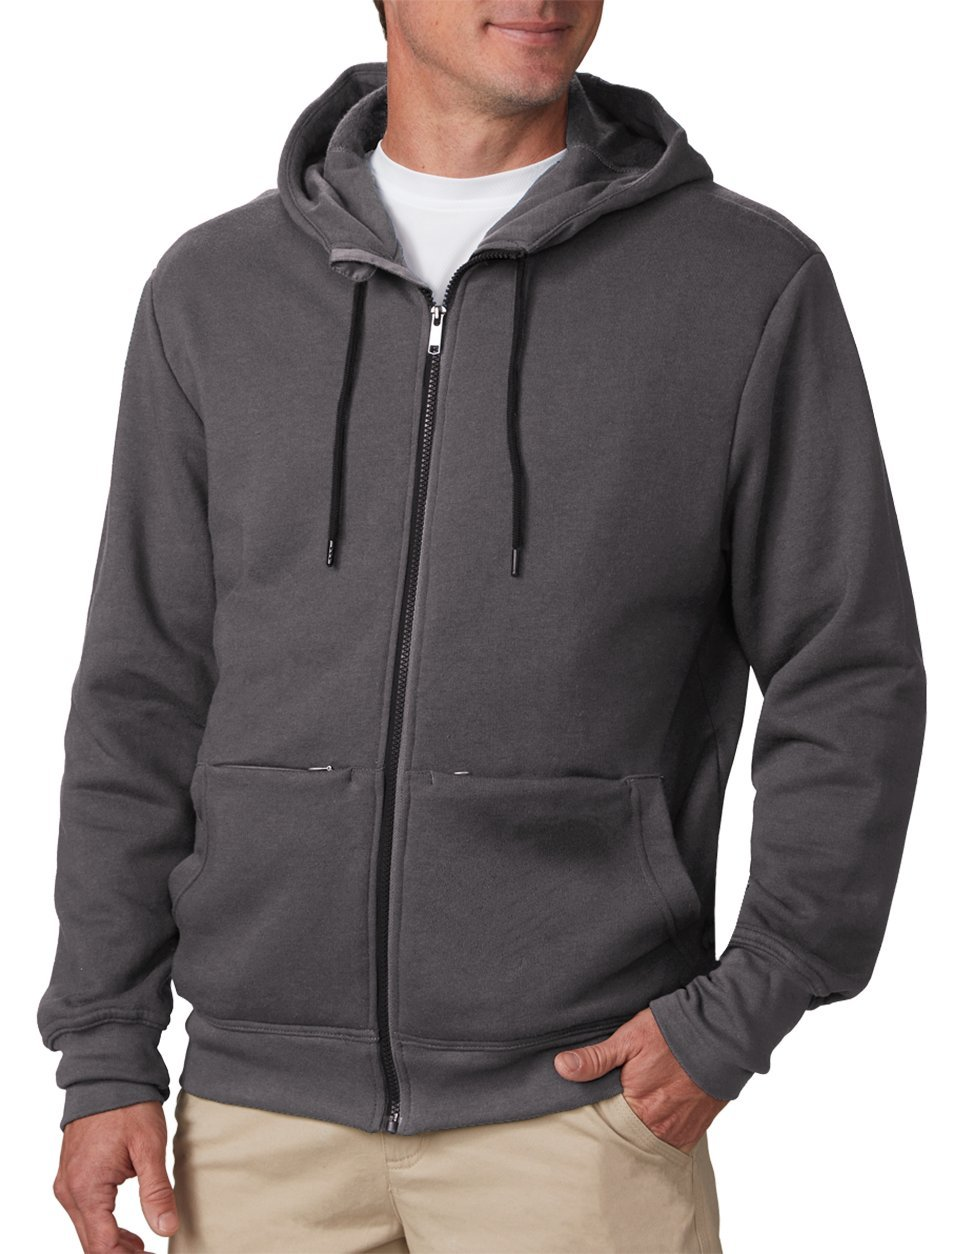 The SCOTTeVEST Hoodie Cotton - 21 Pockets (XXL, Graphite)